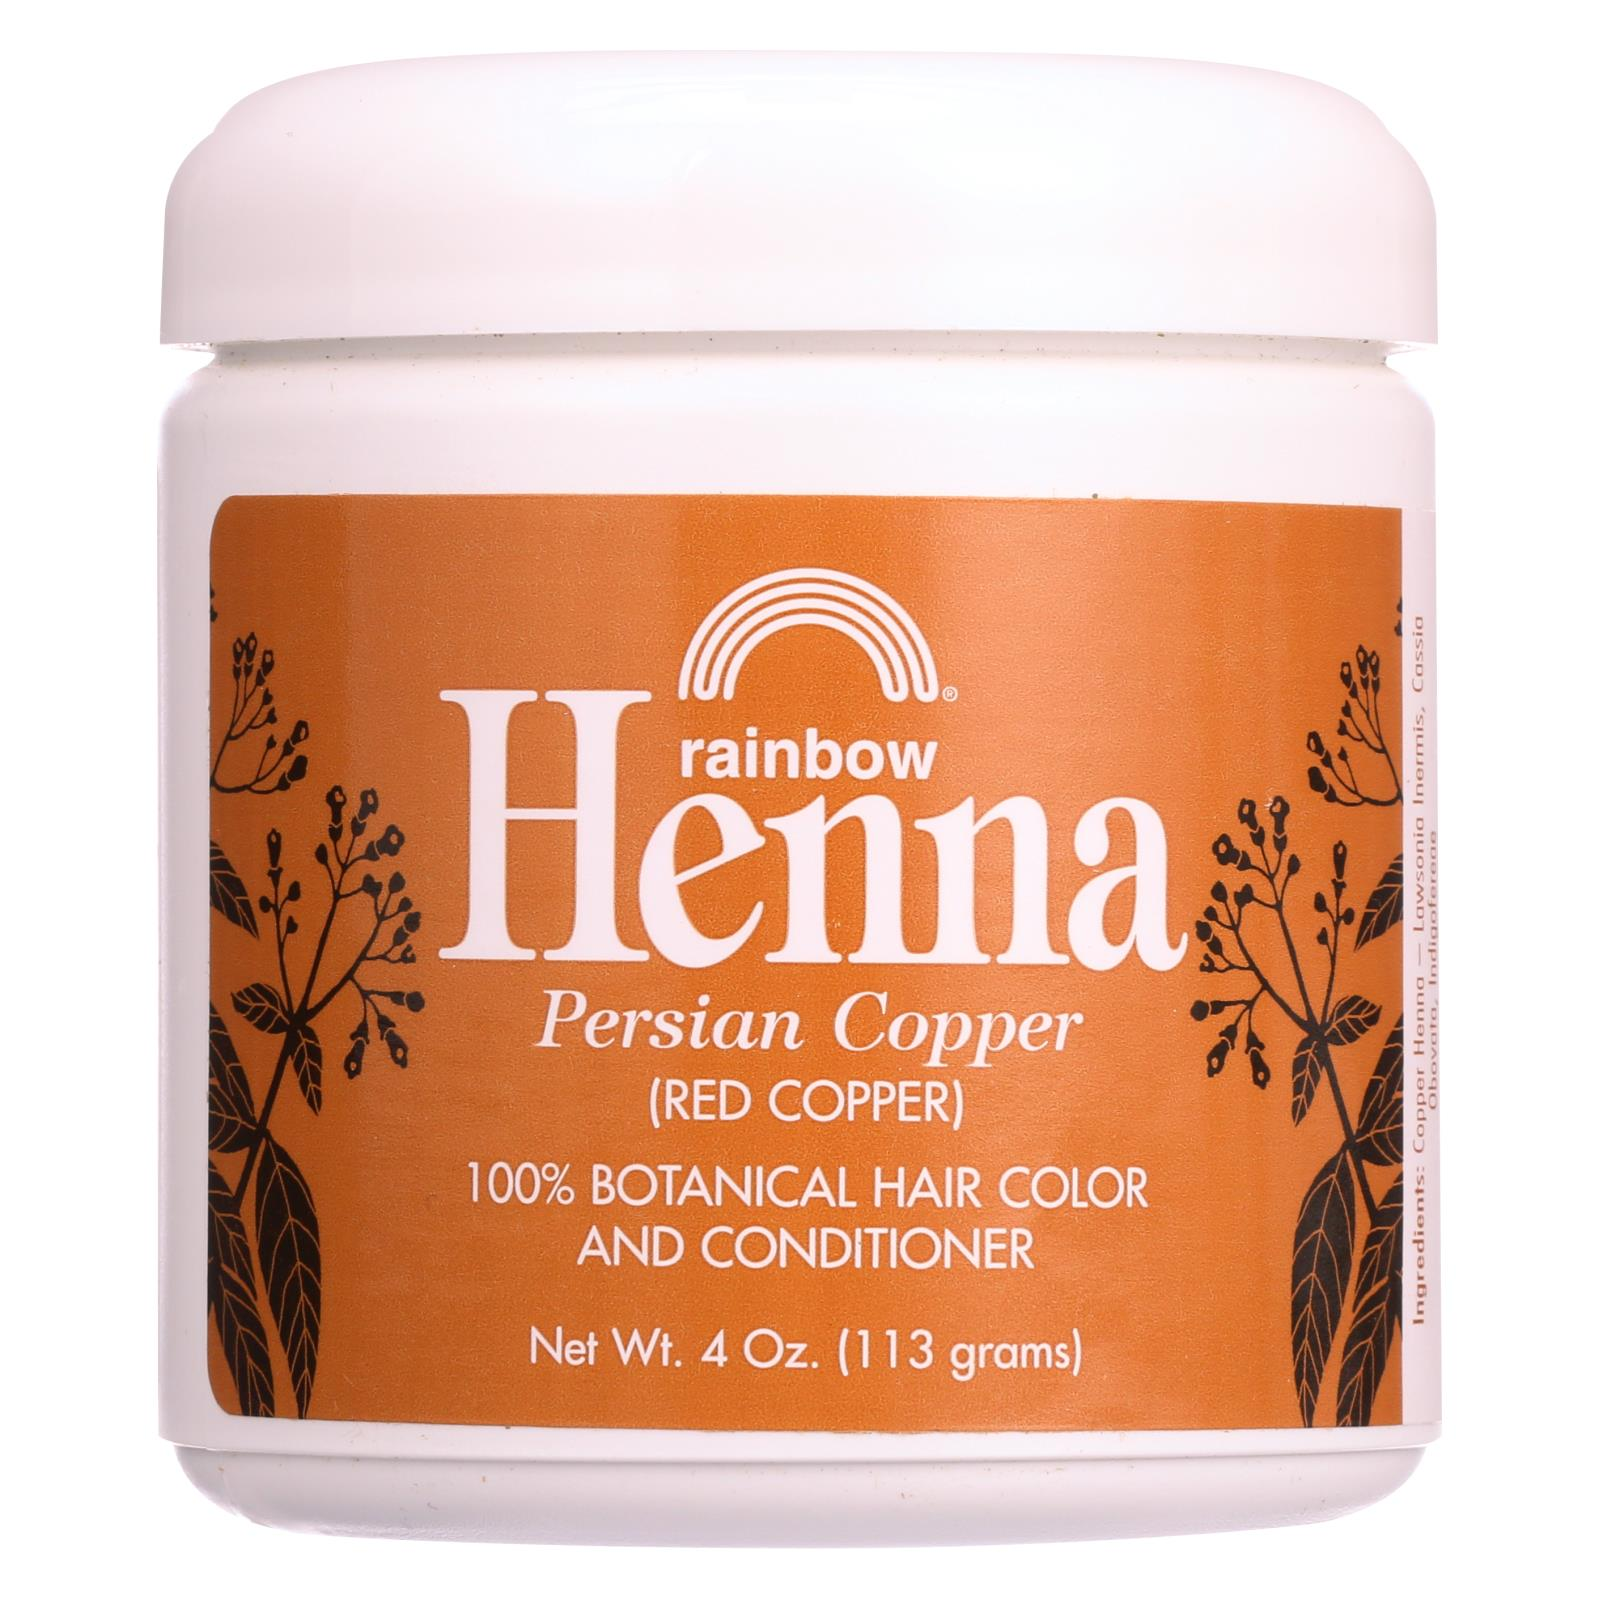 Buy Rainbow Research Henna Hair Color and Conditioner Persian Copper Red Copper - 4 oz - Hair Color from Veroeco.com